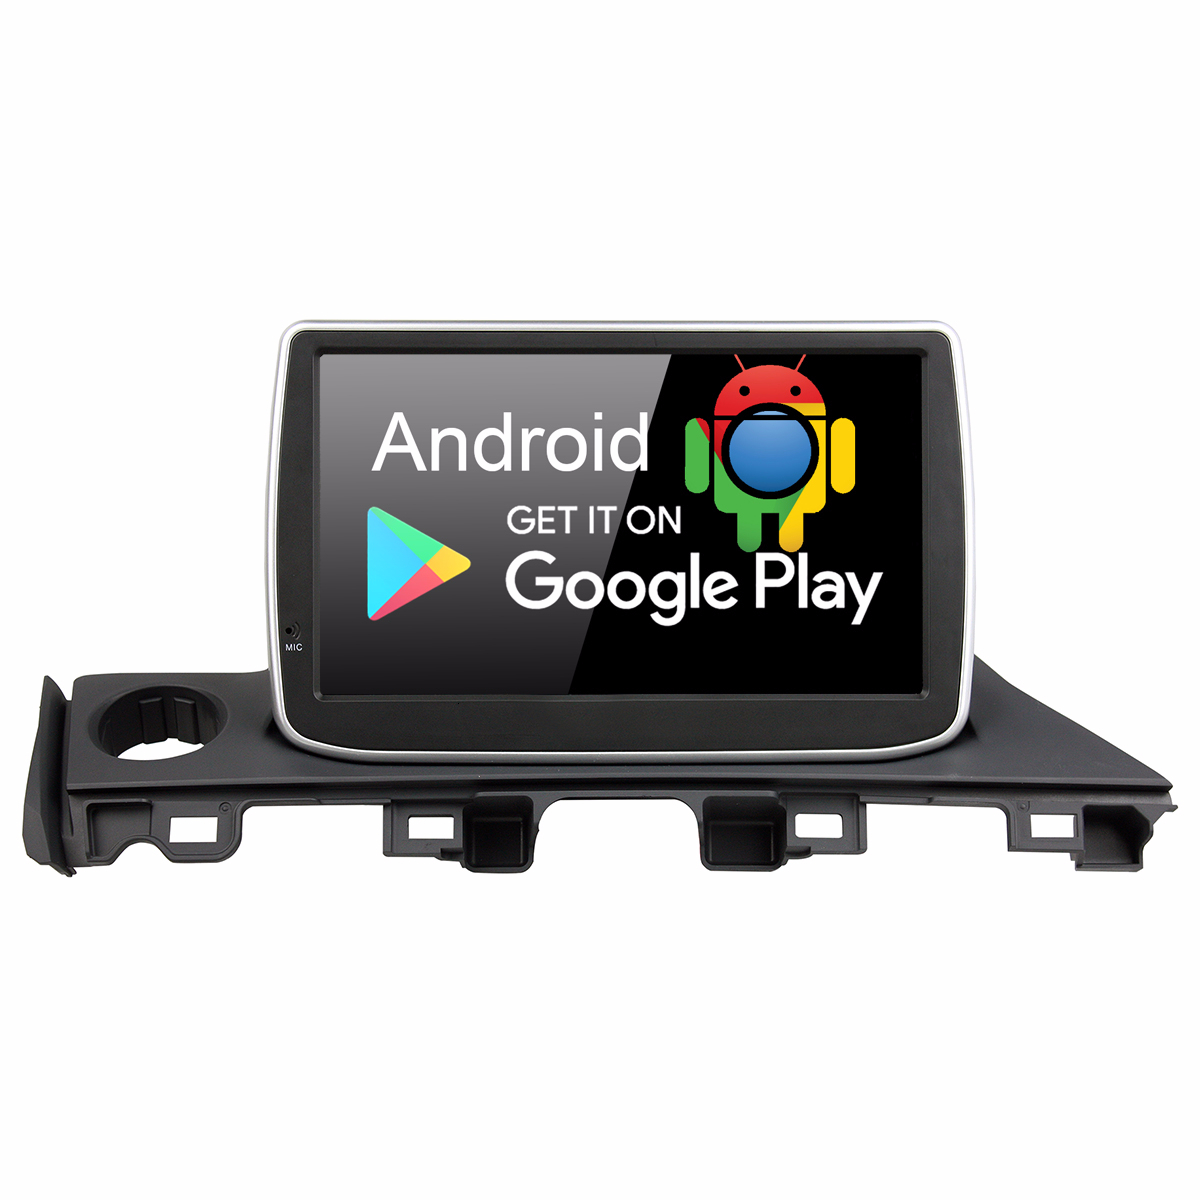 8'' IPS Android Entertainment Intelligent <font><b>System</b></font> Car Multimedia Player For <font><b>Mazda</b></font> <font><b>6</b></font> 2017 2018 2019 mazda6 Stereo <font><b>Gps</b></font> Radio DSP image